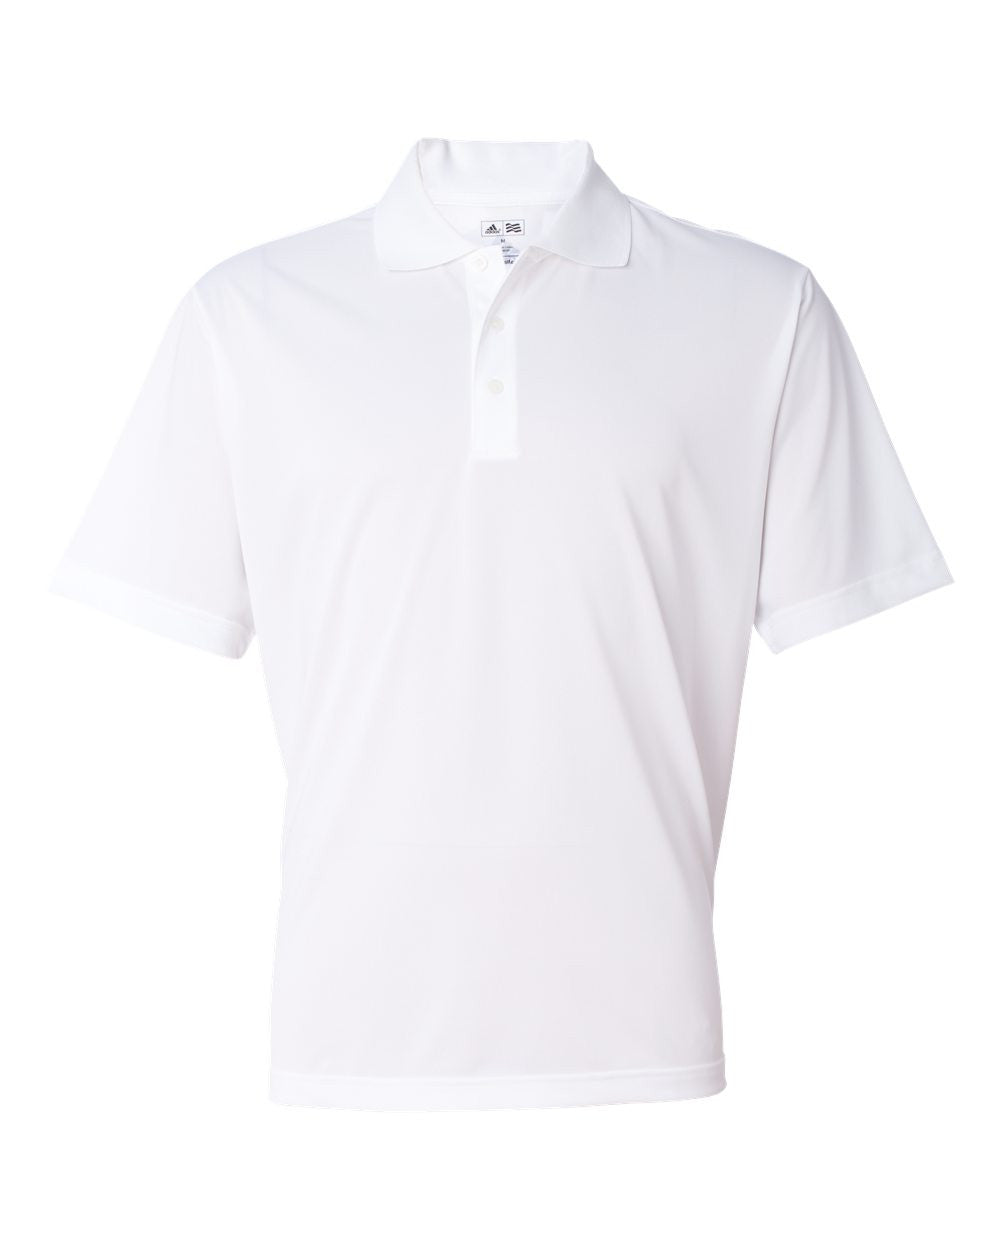 Adidas Golf Climalite Polo - Discountedrack.com